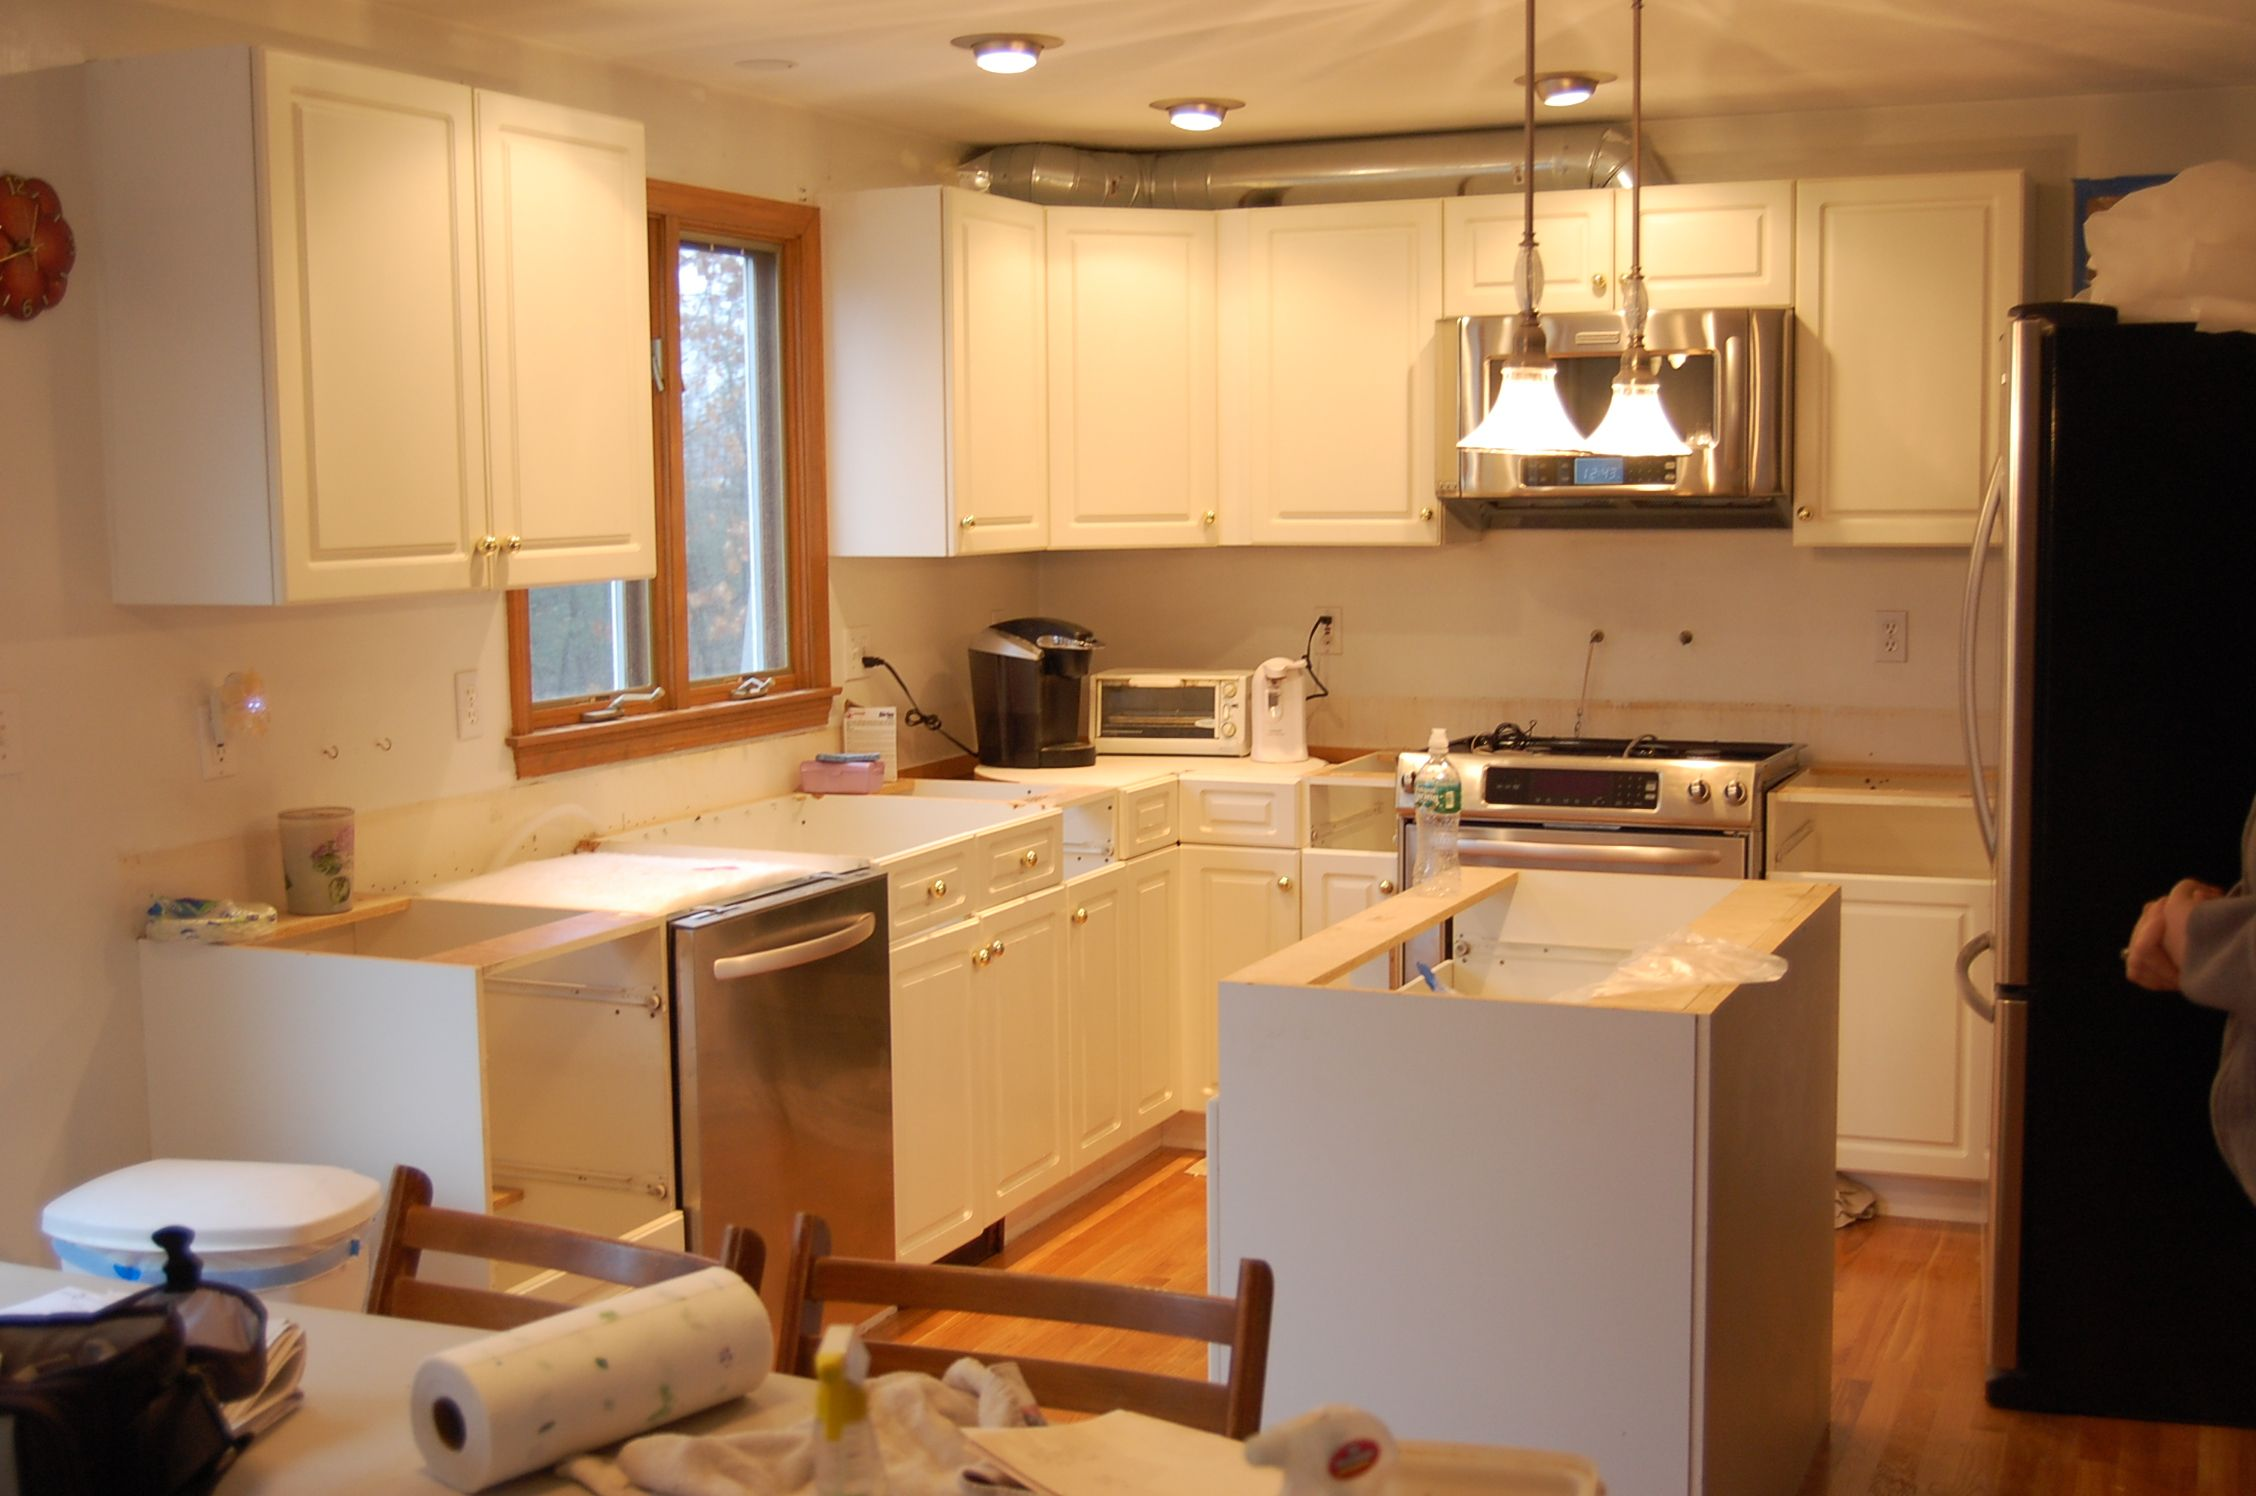 Stripping Kitchen Cabinets 2163 House Remodeling Cost Of Kitchen Cabinets Refacing Kitchen Cabinets Refacing Kitchen Cabinets Cost